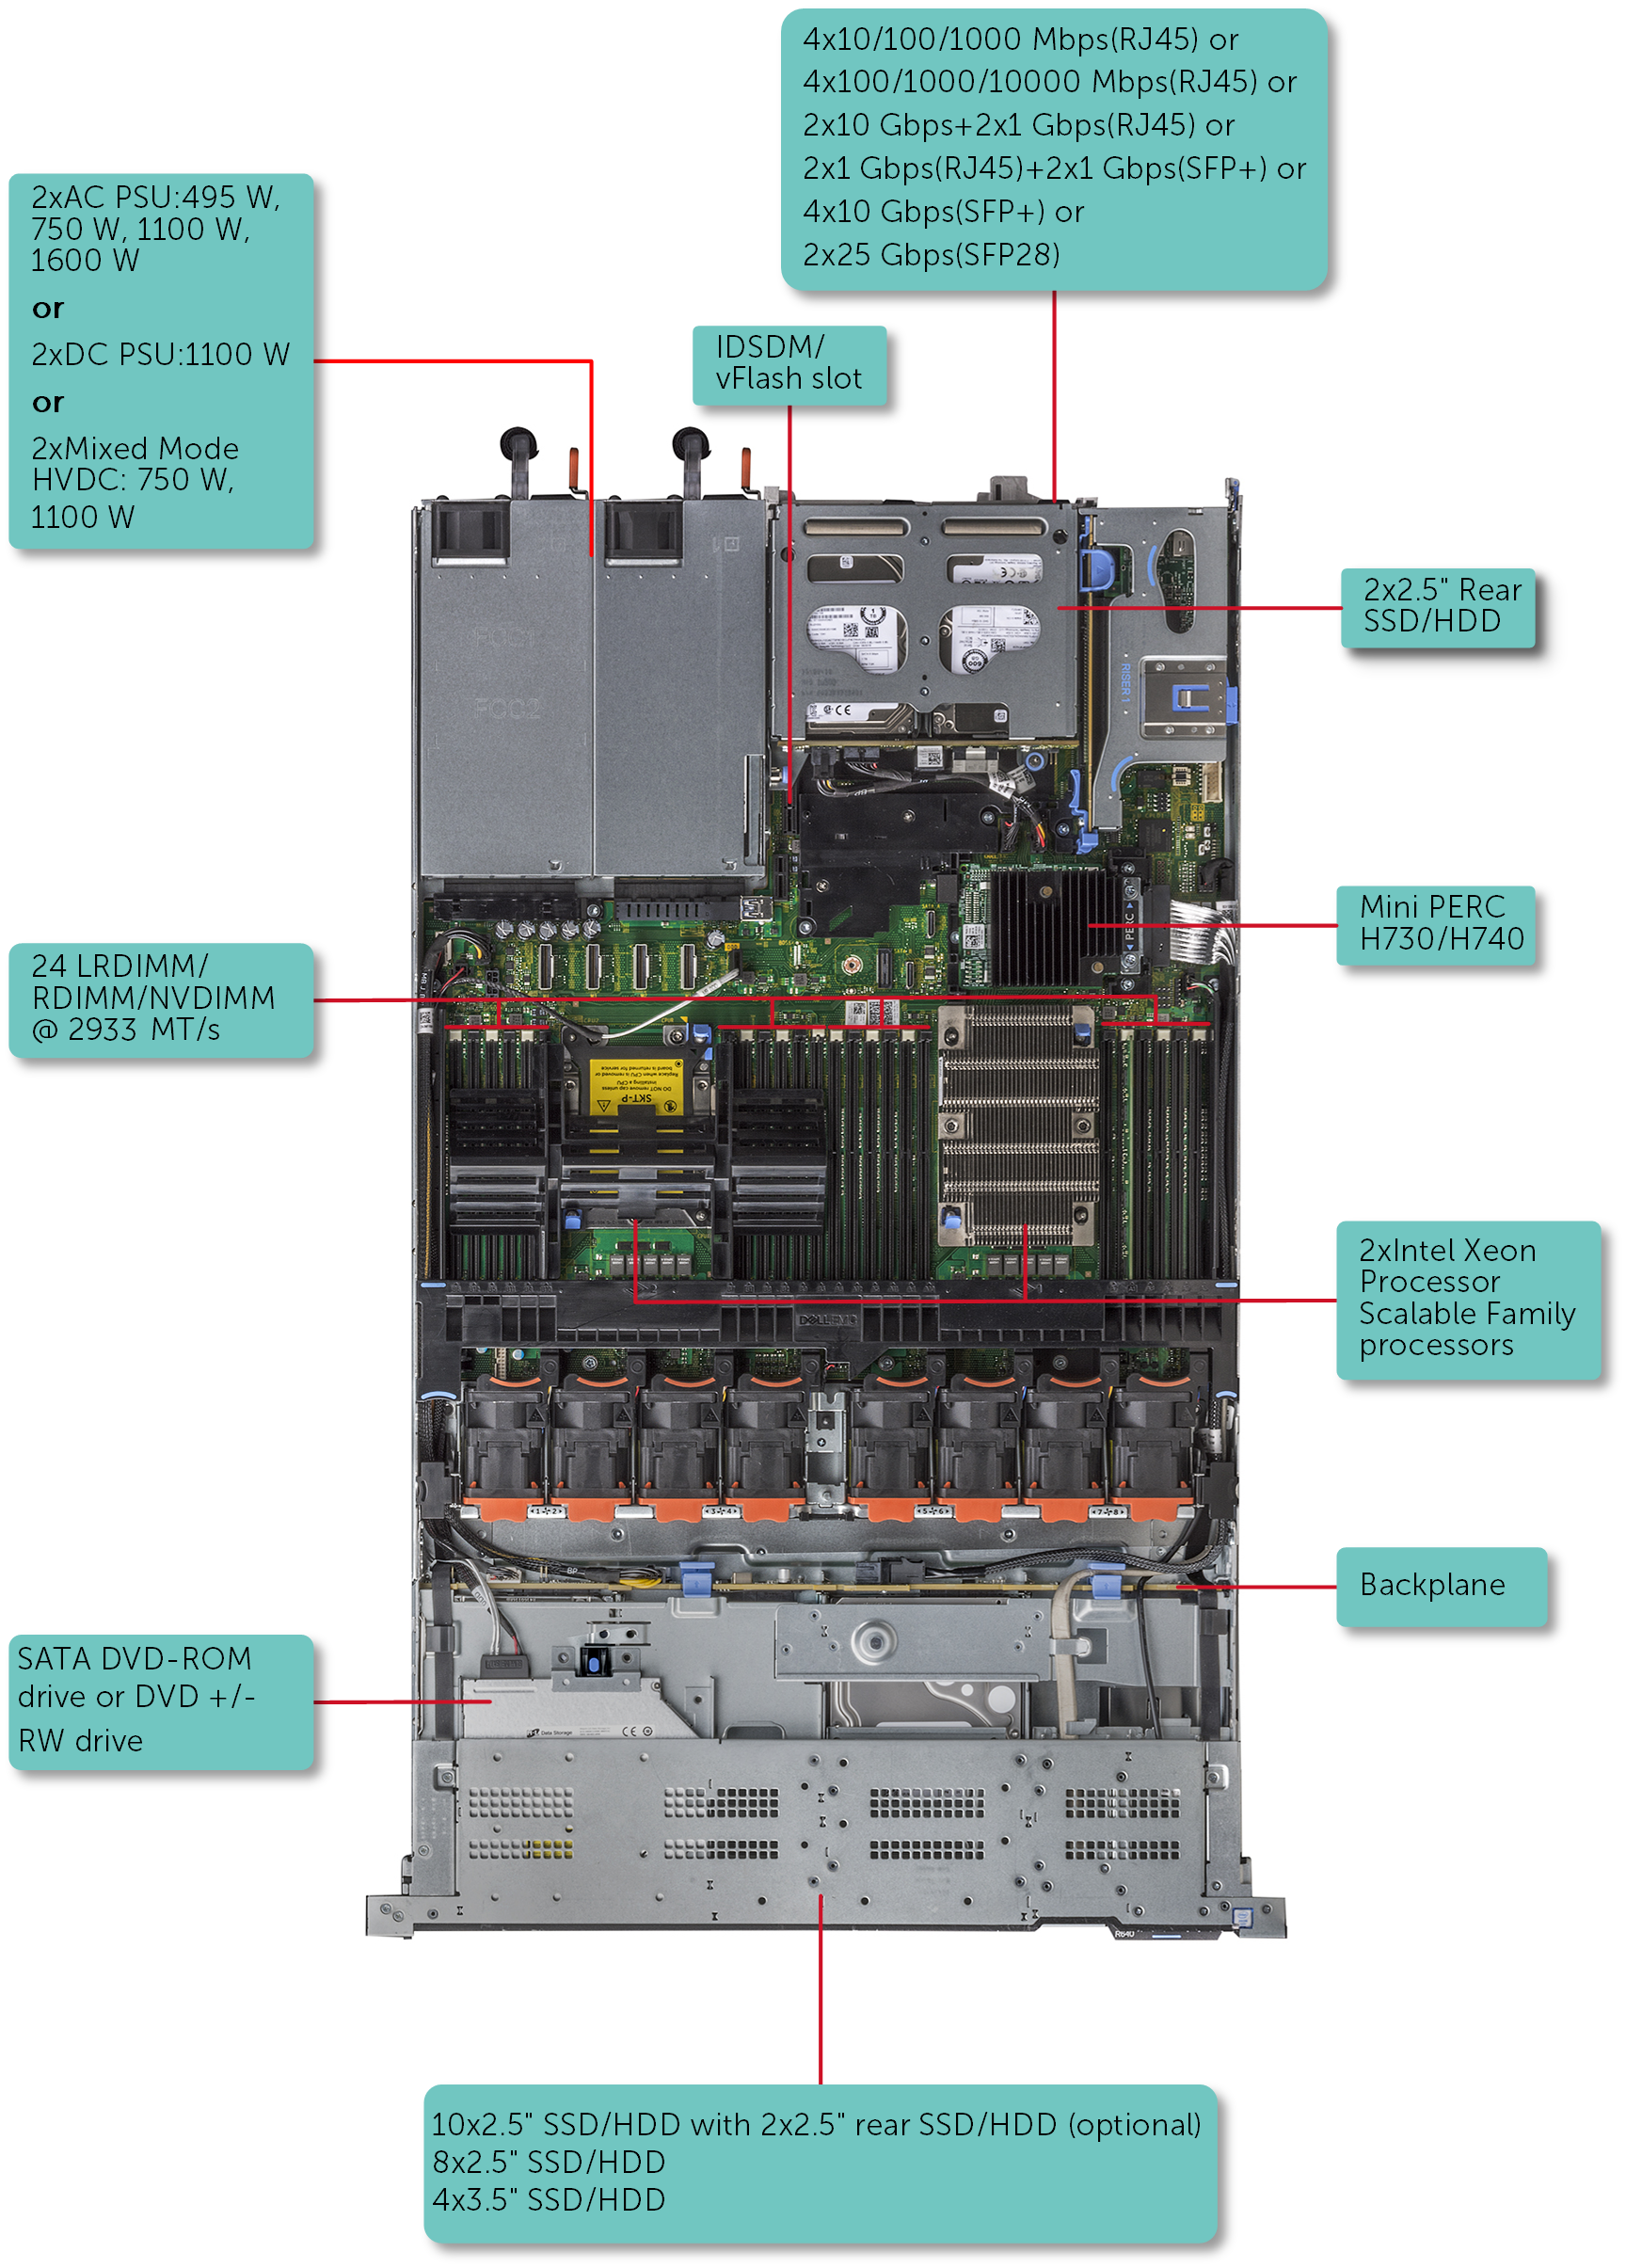 This image shows the supported configurations for PowerEdge R640